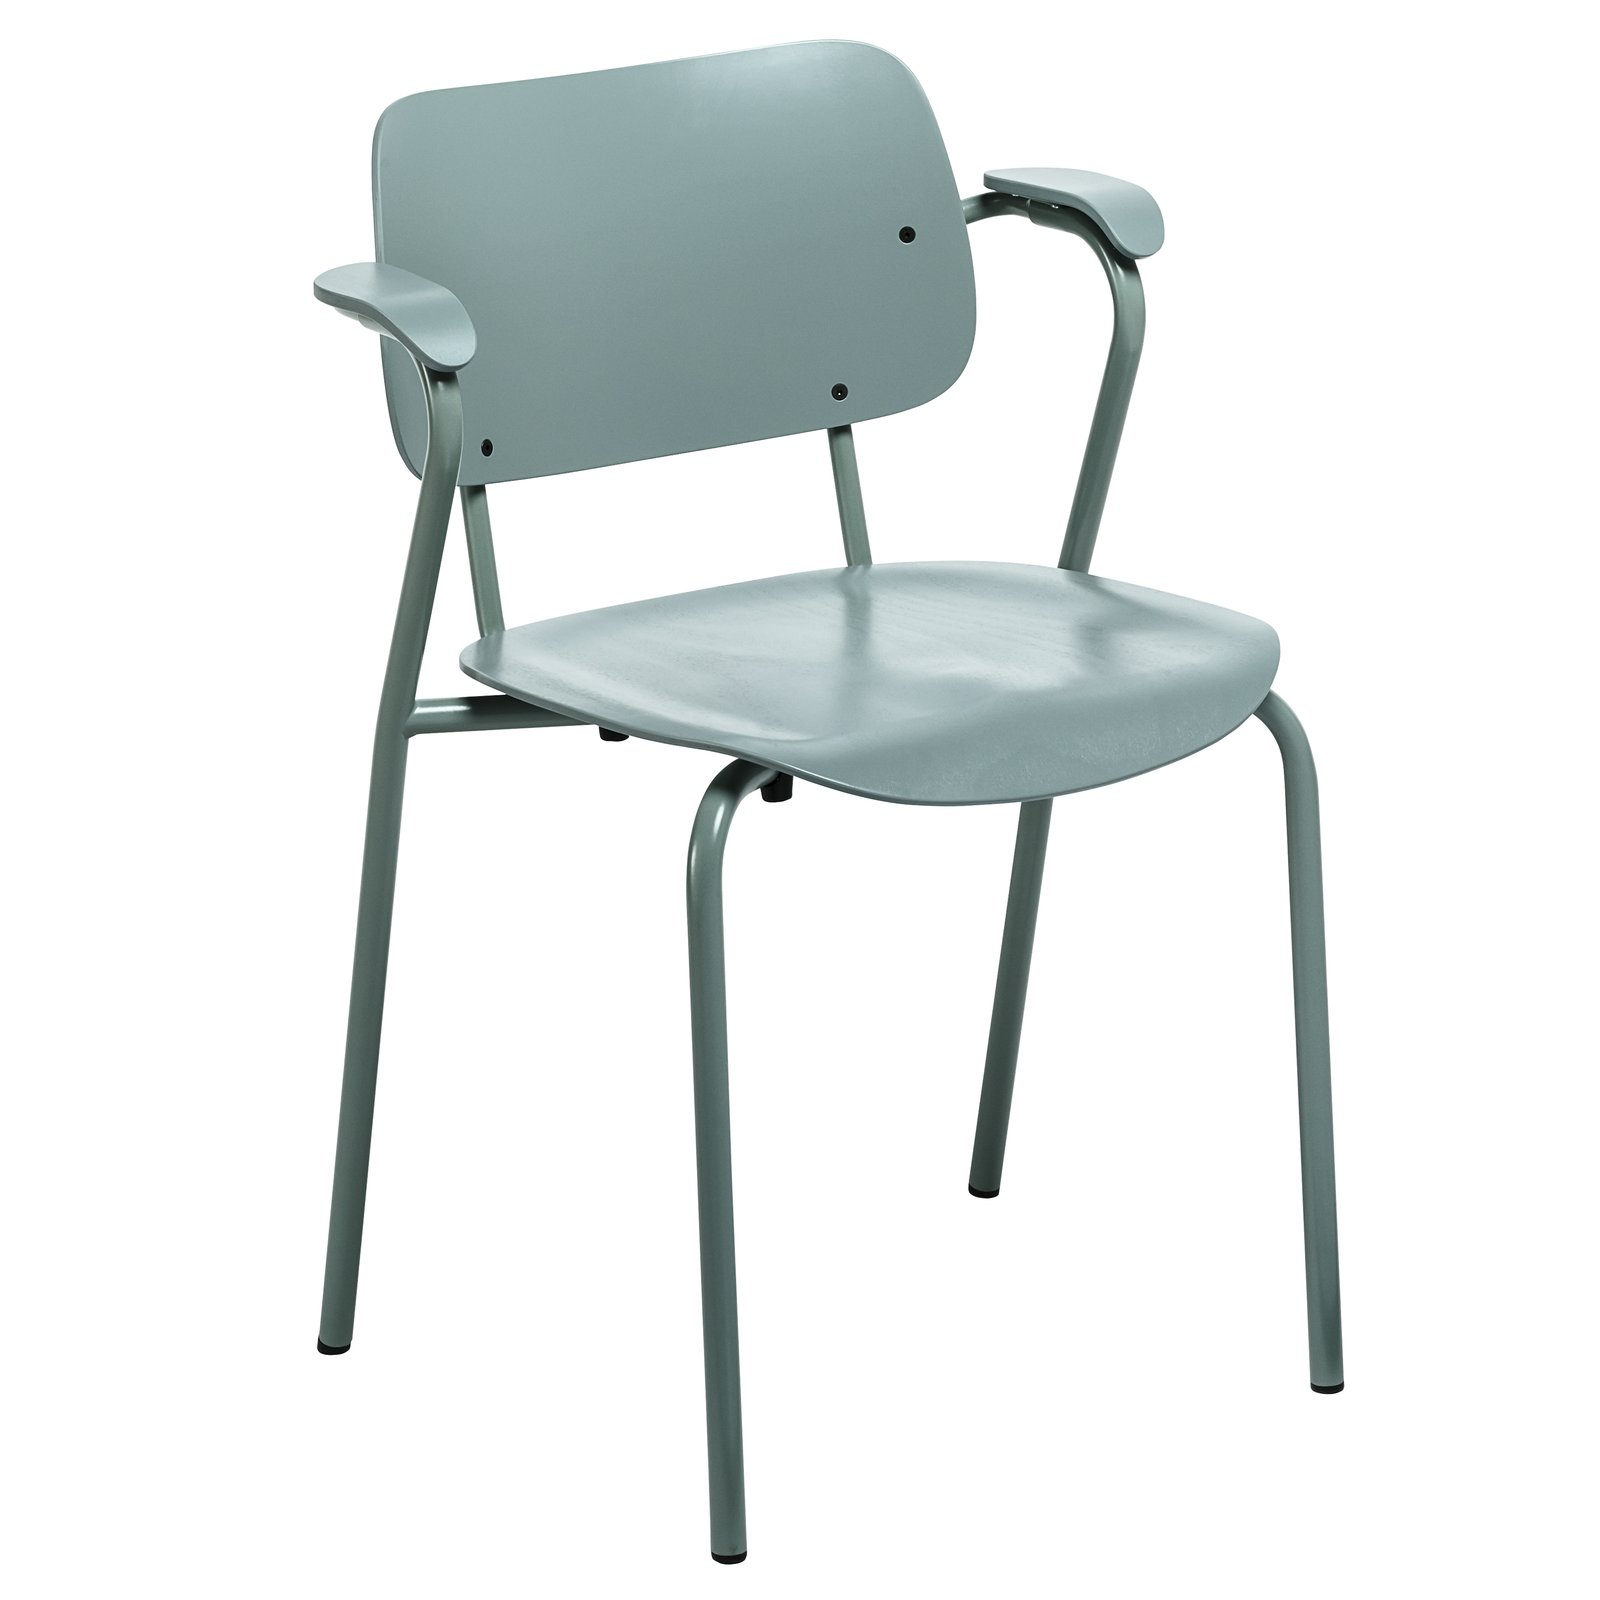 "The Lukki family of seating (Finnish for ""daddy longlegs"") includes a range of armchairs and stools in a variety of finishes including sage and stone grey, new for 2014 from Artek."